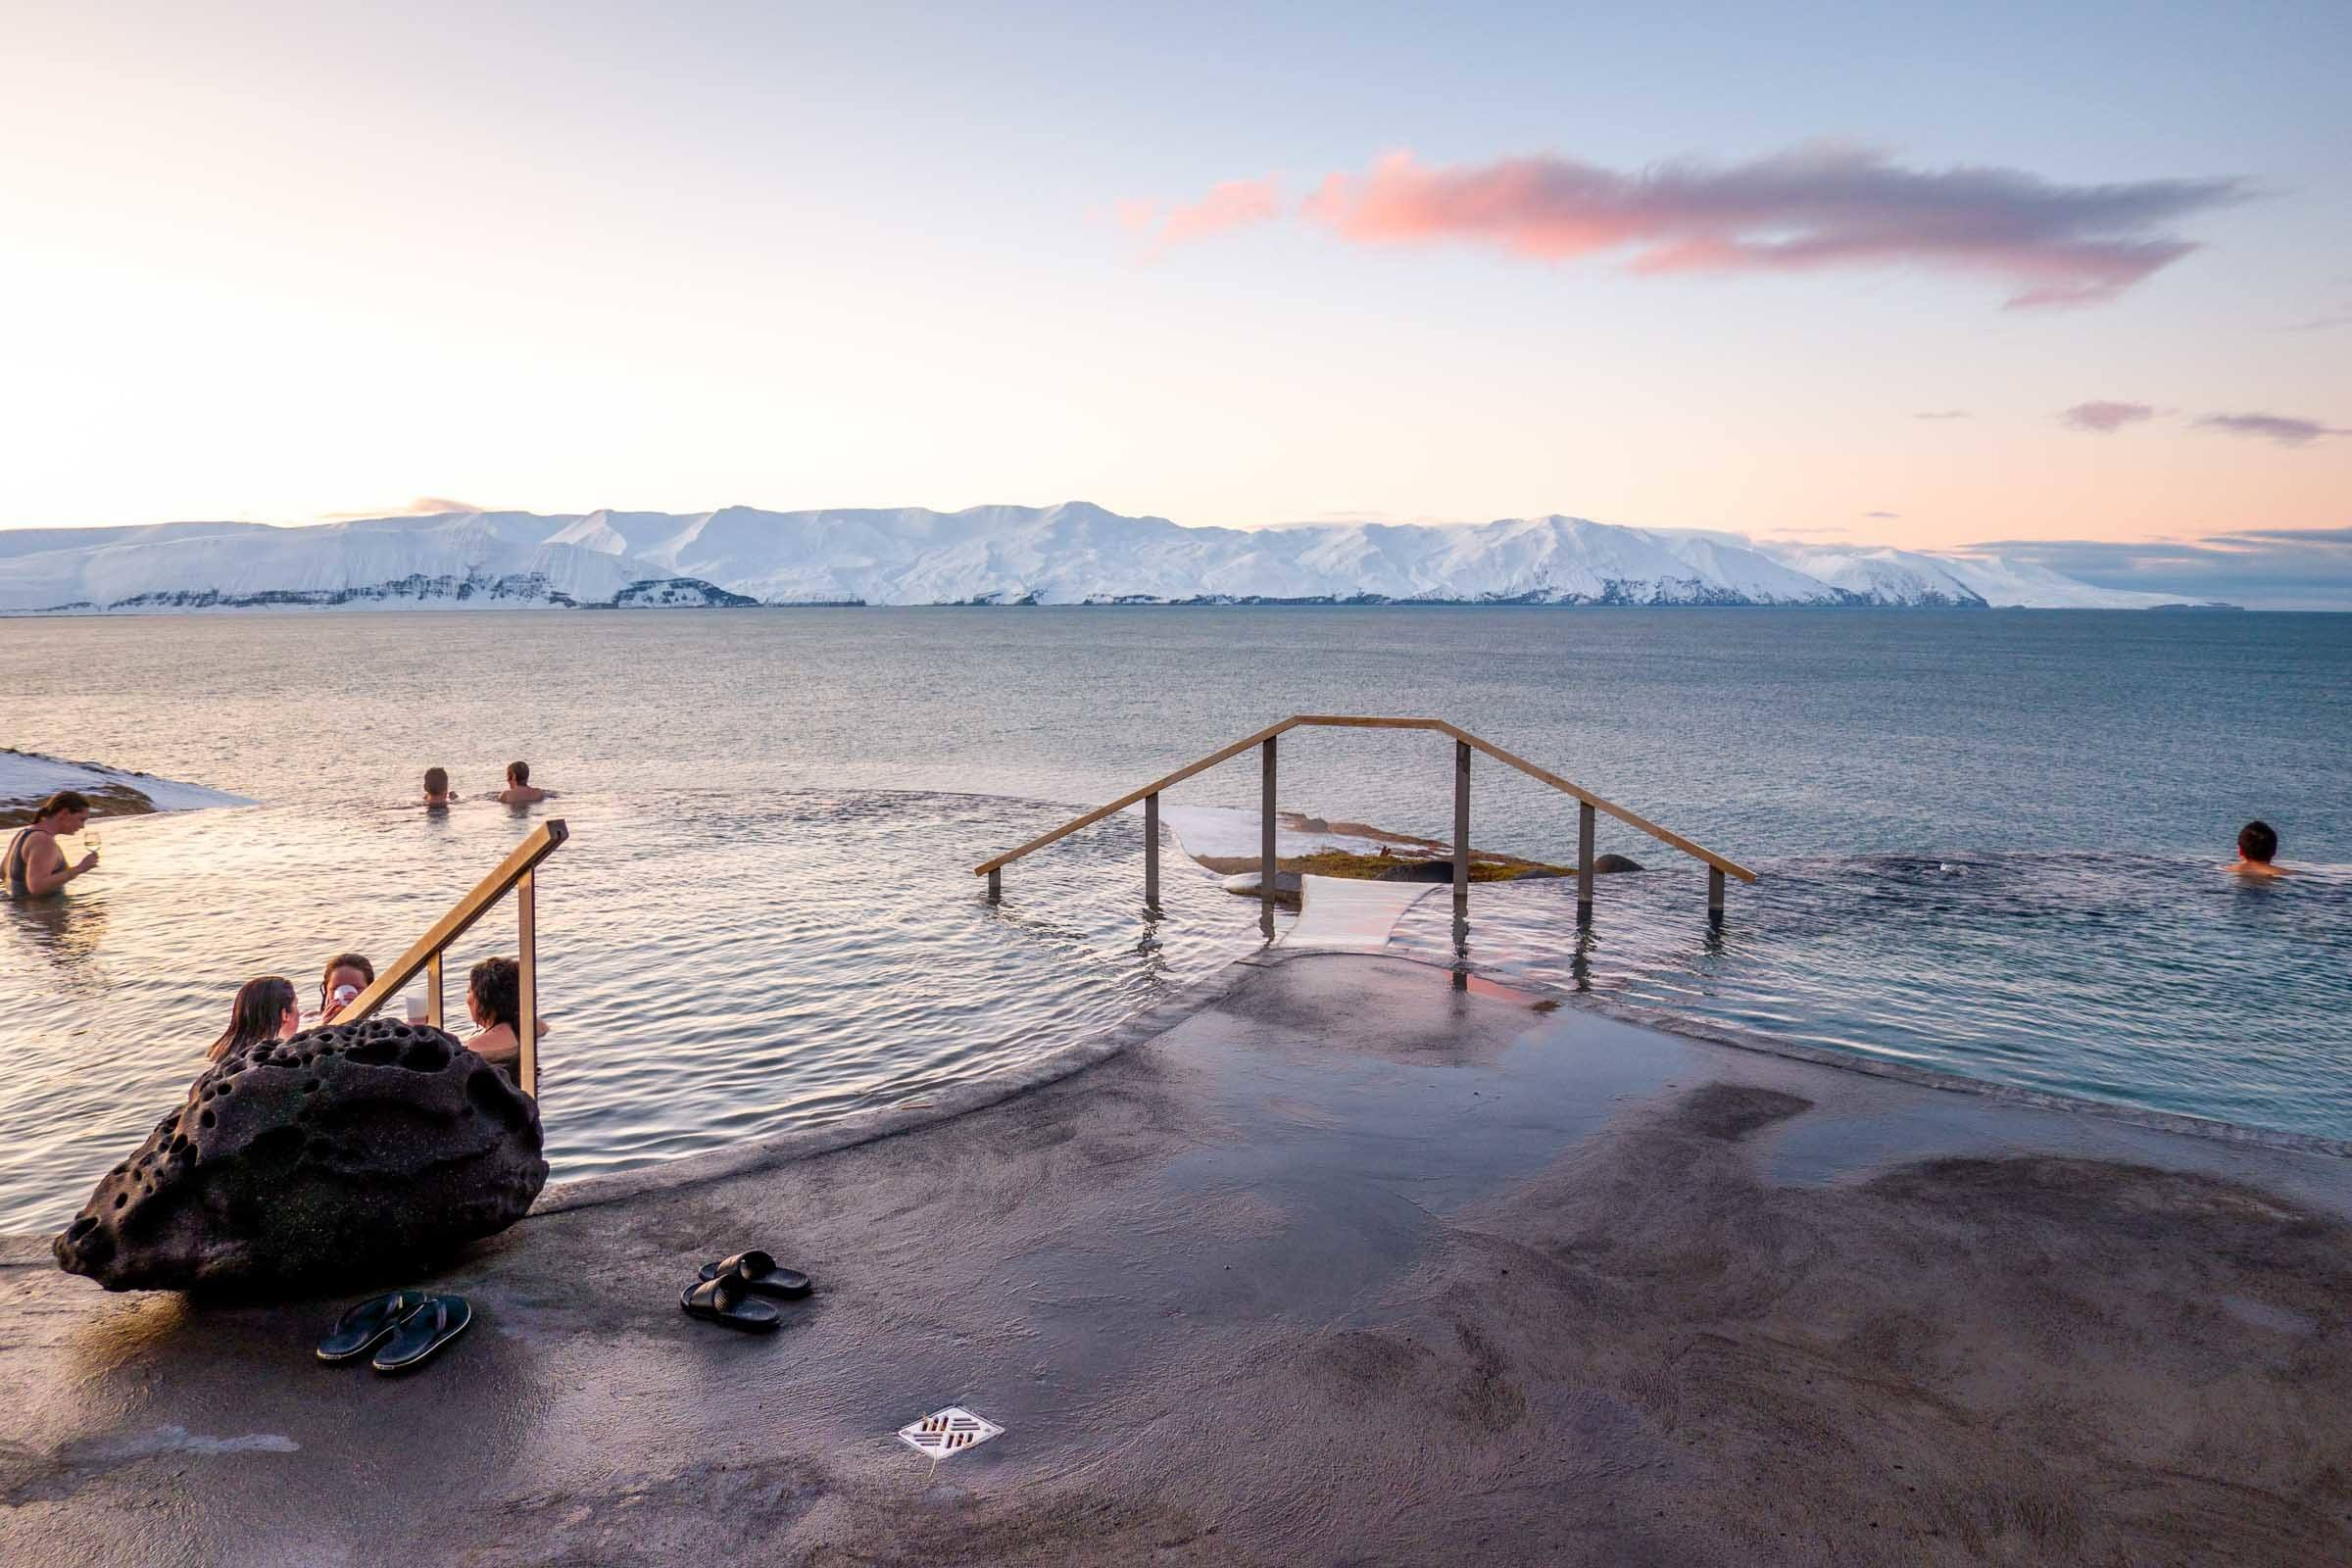 Bathers in the infinity pool at the Geosea Geothermal Sea Baths in Husavik.